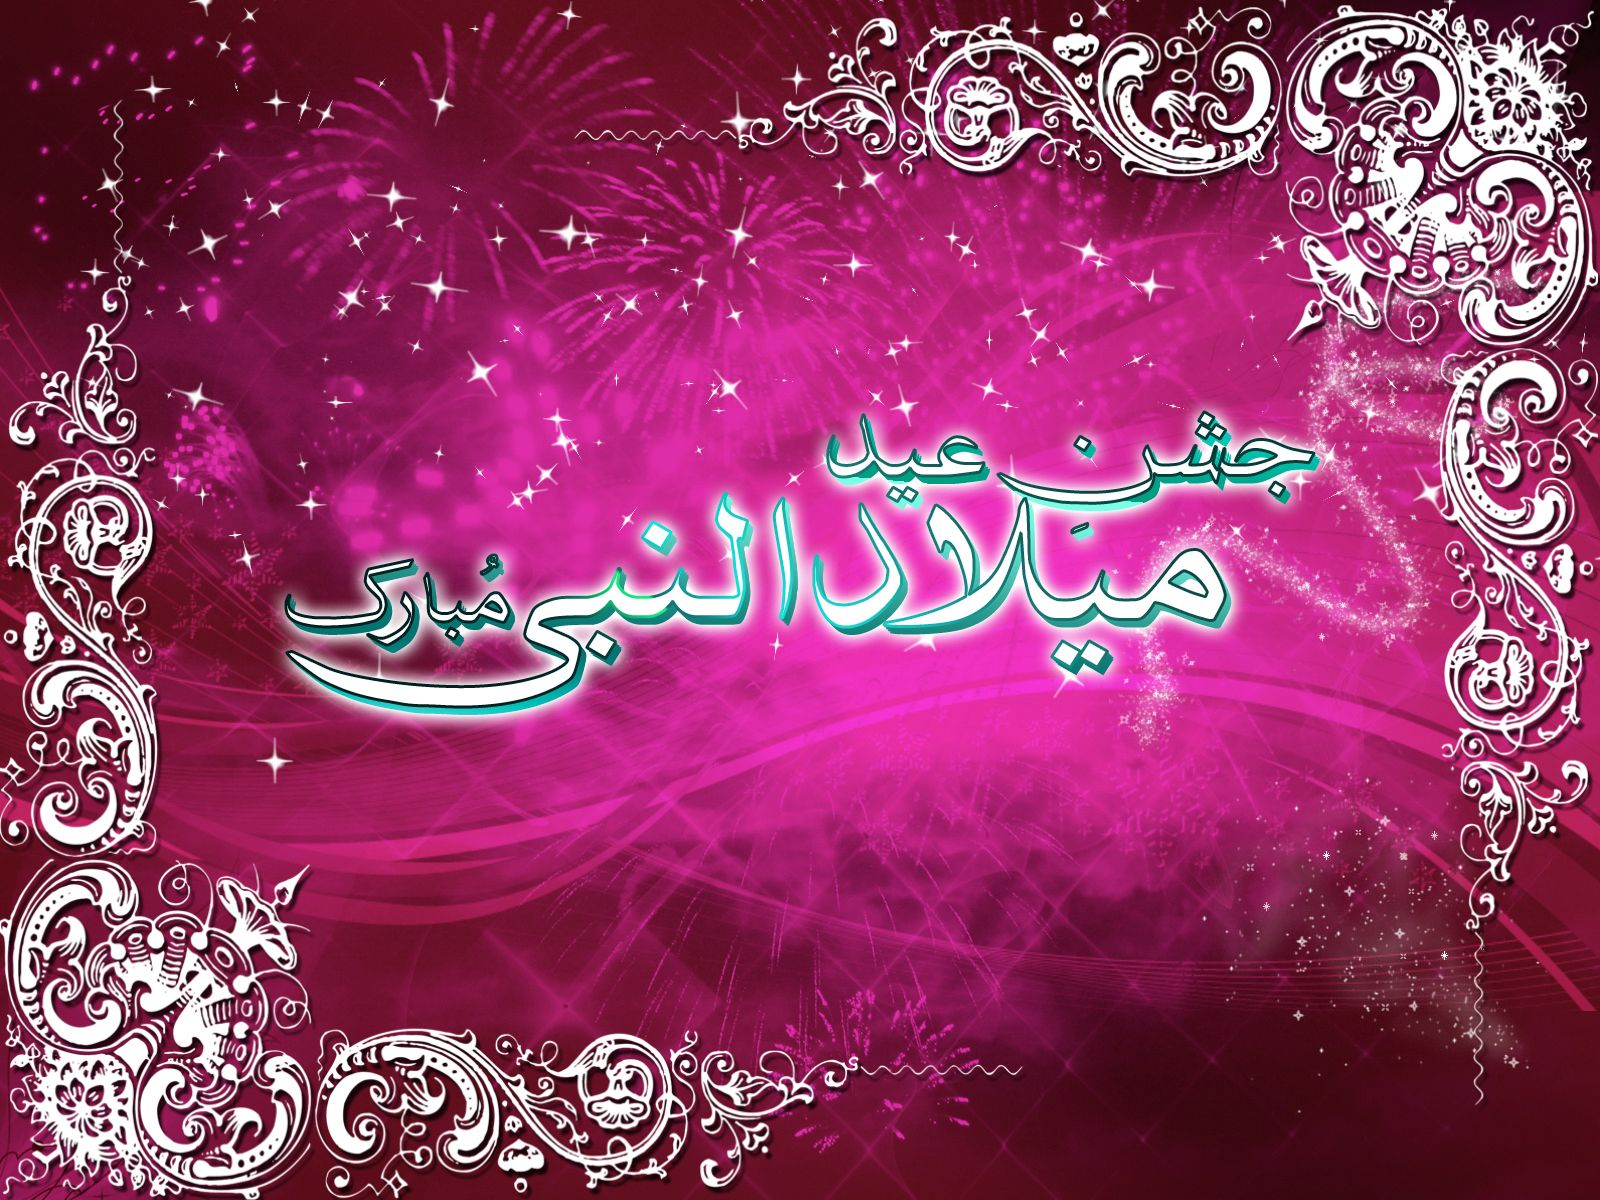 Download Milad Eid Al-Fitr Greeting - 744585f93c8e9df45abd63dcdceff550  Trends_536224 .jpg